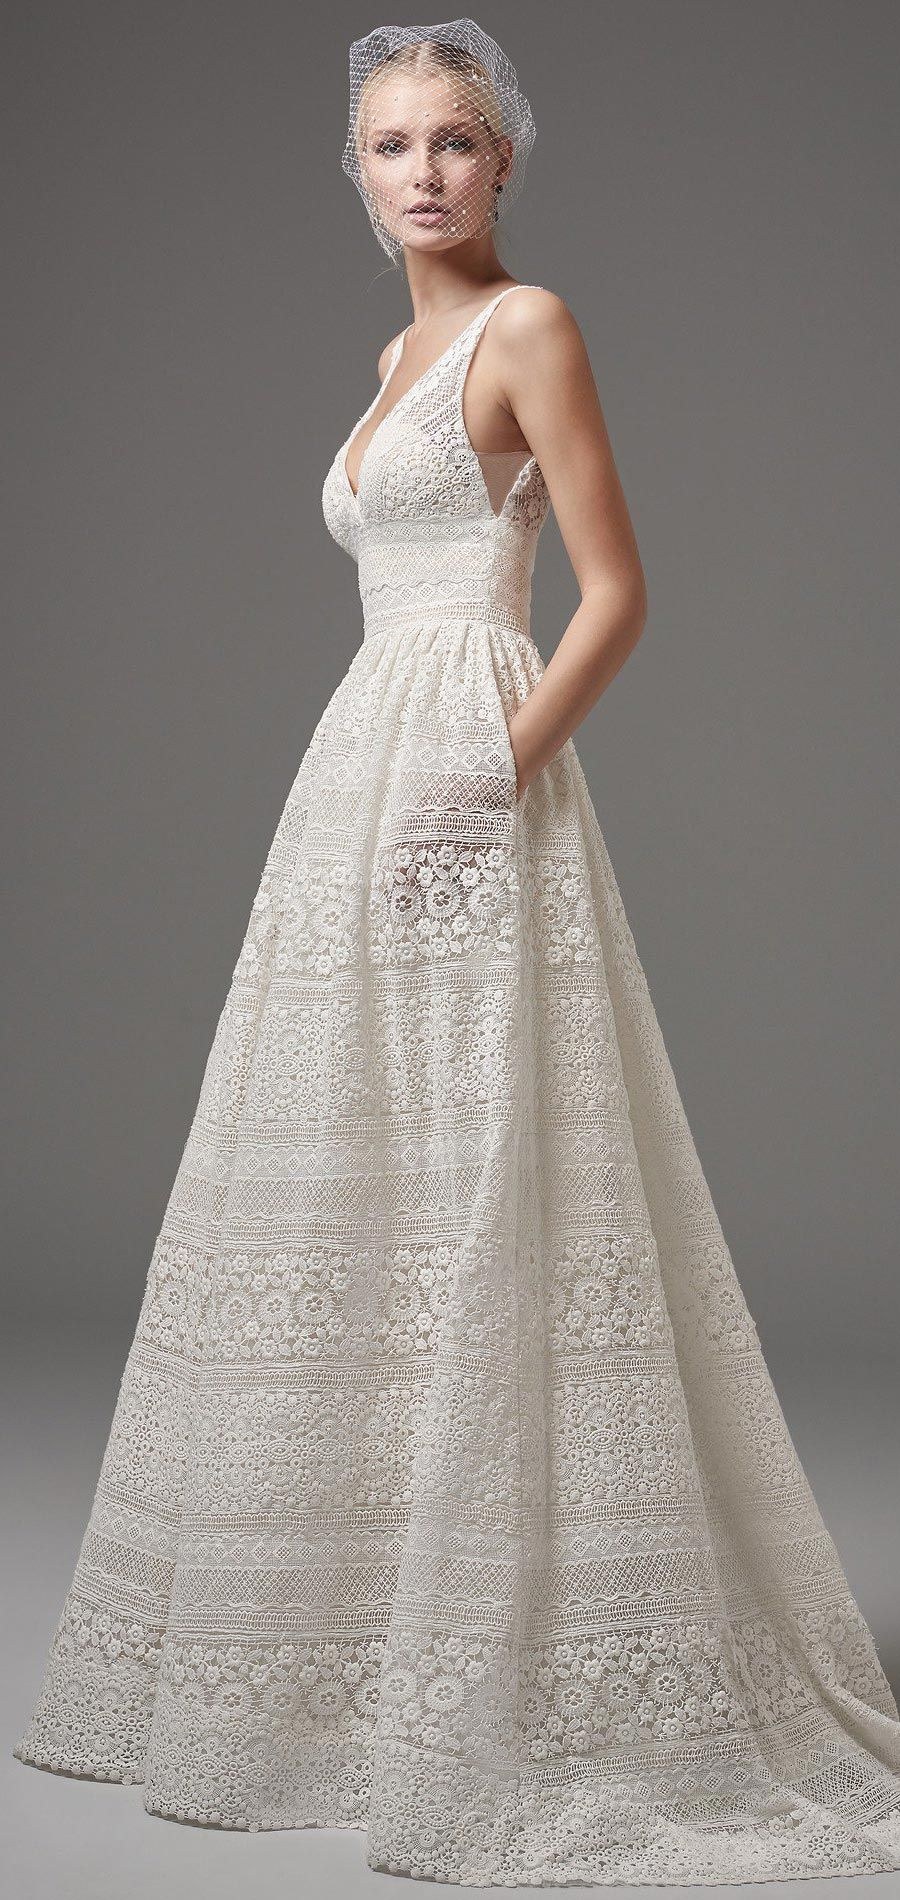 Evan by sottero and midgley wedding dresses weddings pinterest